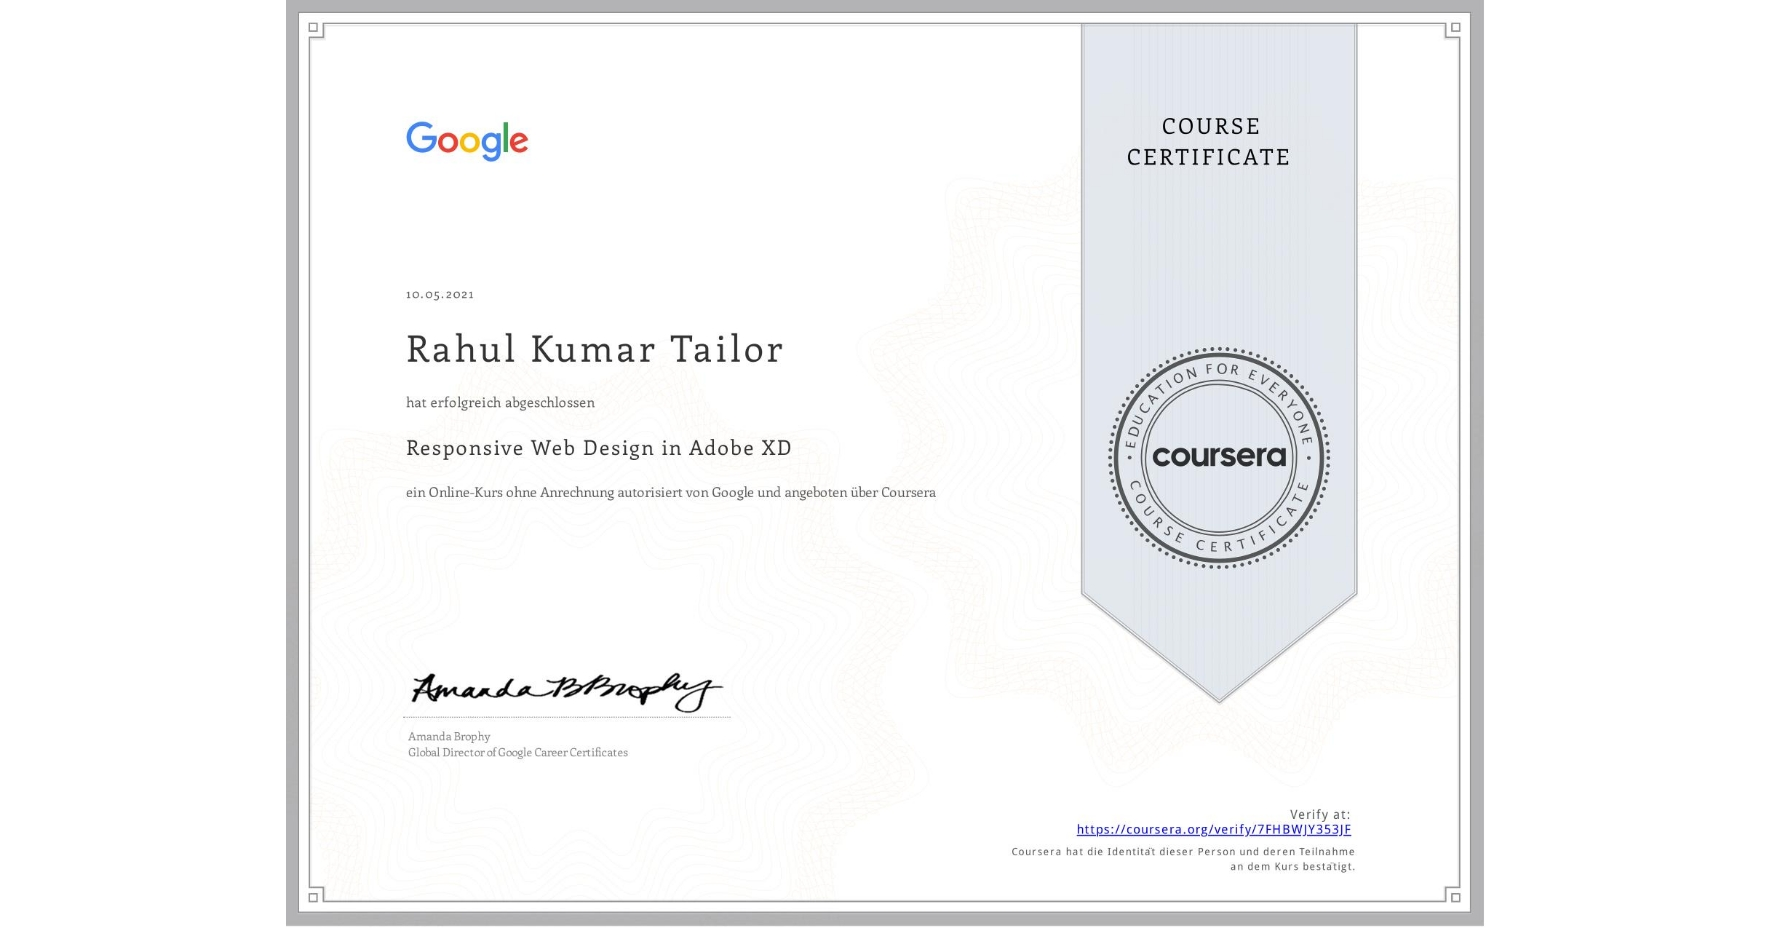 View certificate for Rahul Kumar Tailor, Responsive Web Design in Adobe XD, an online non-credit course authorized by Google and offered through Coursera